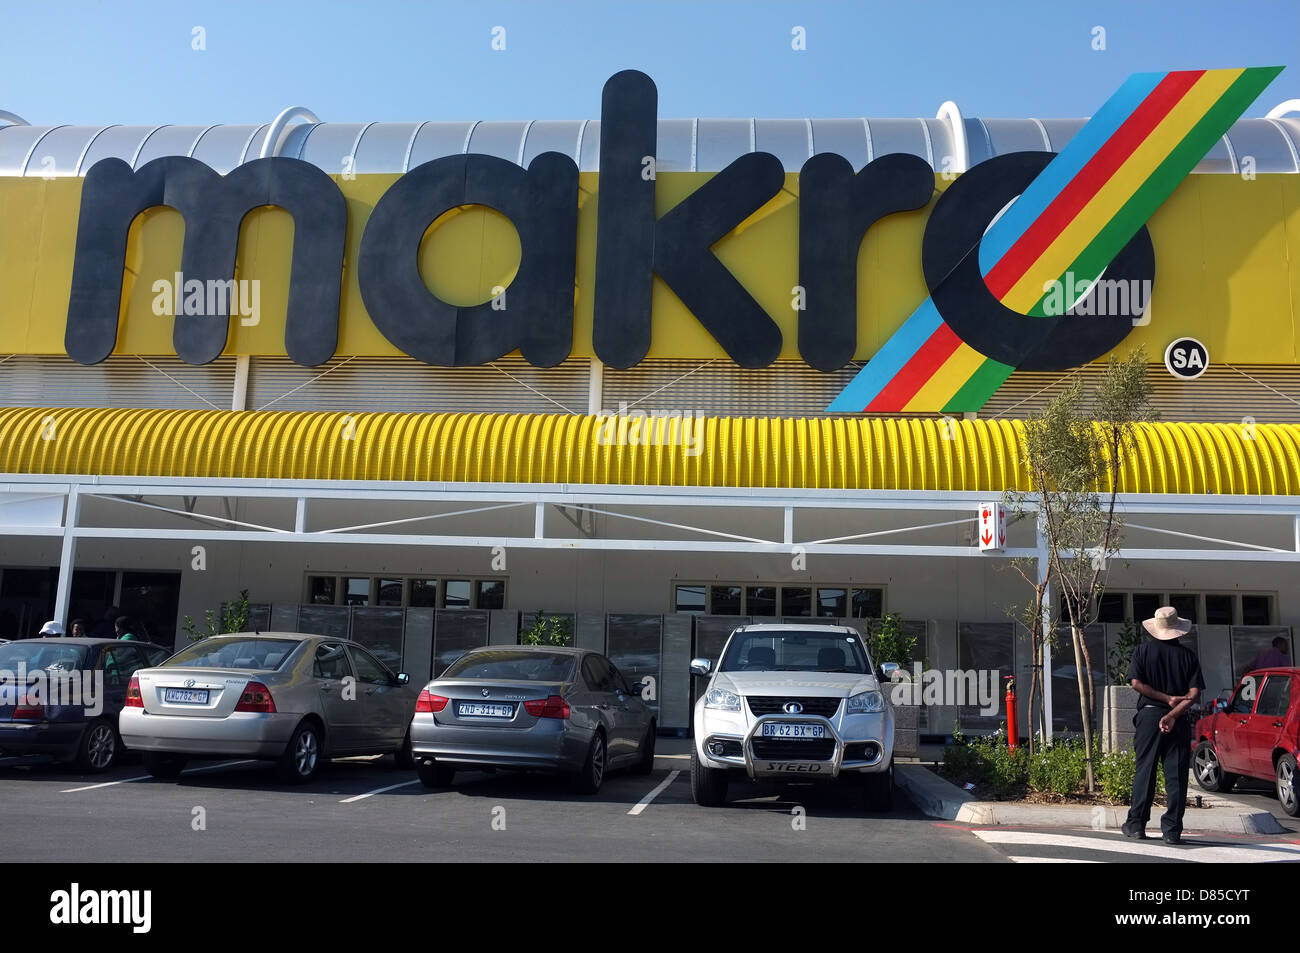 The front of a Makro supermarket shop in Johannesburg, South Africa. - Stock Image